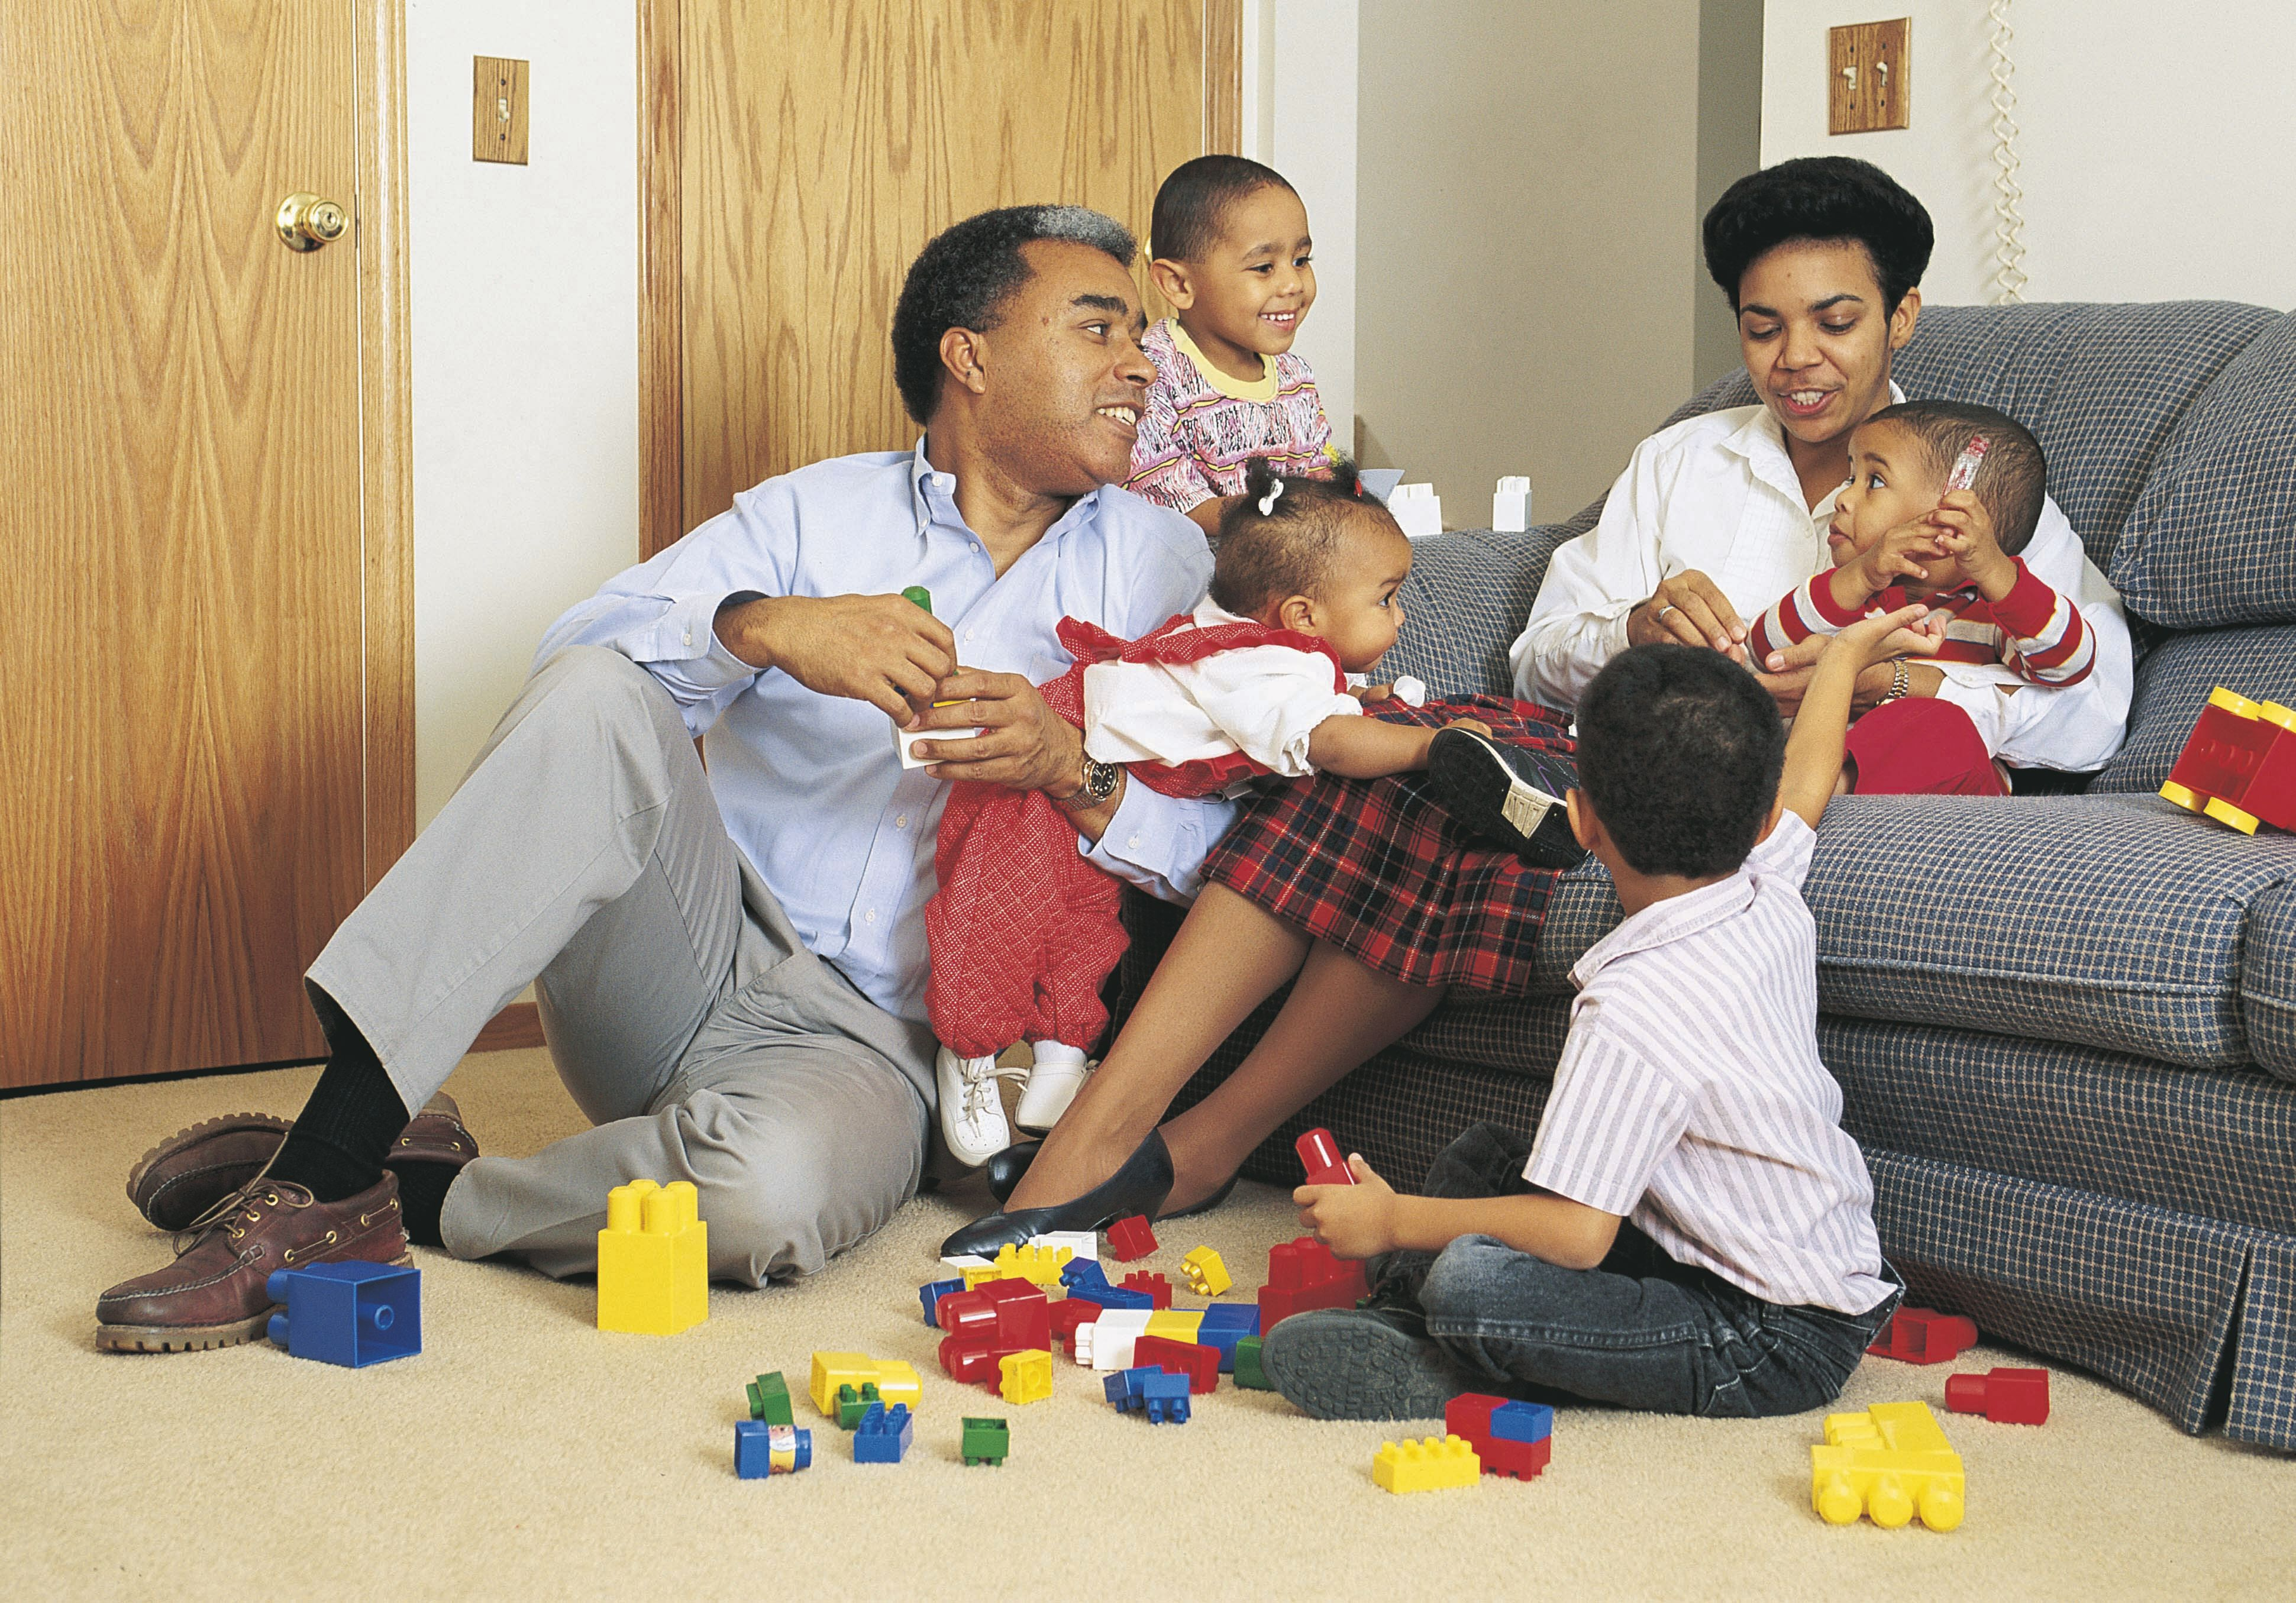 Family Togetherness; GAK 616; Ephesians 6:1–4; Colossians 3:18–21; Mosiah 4:14–15; Doctrine and Covenants 93:40